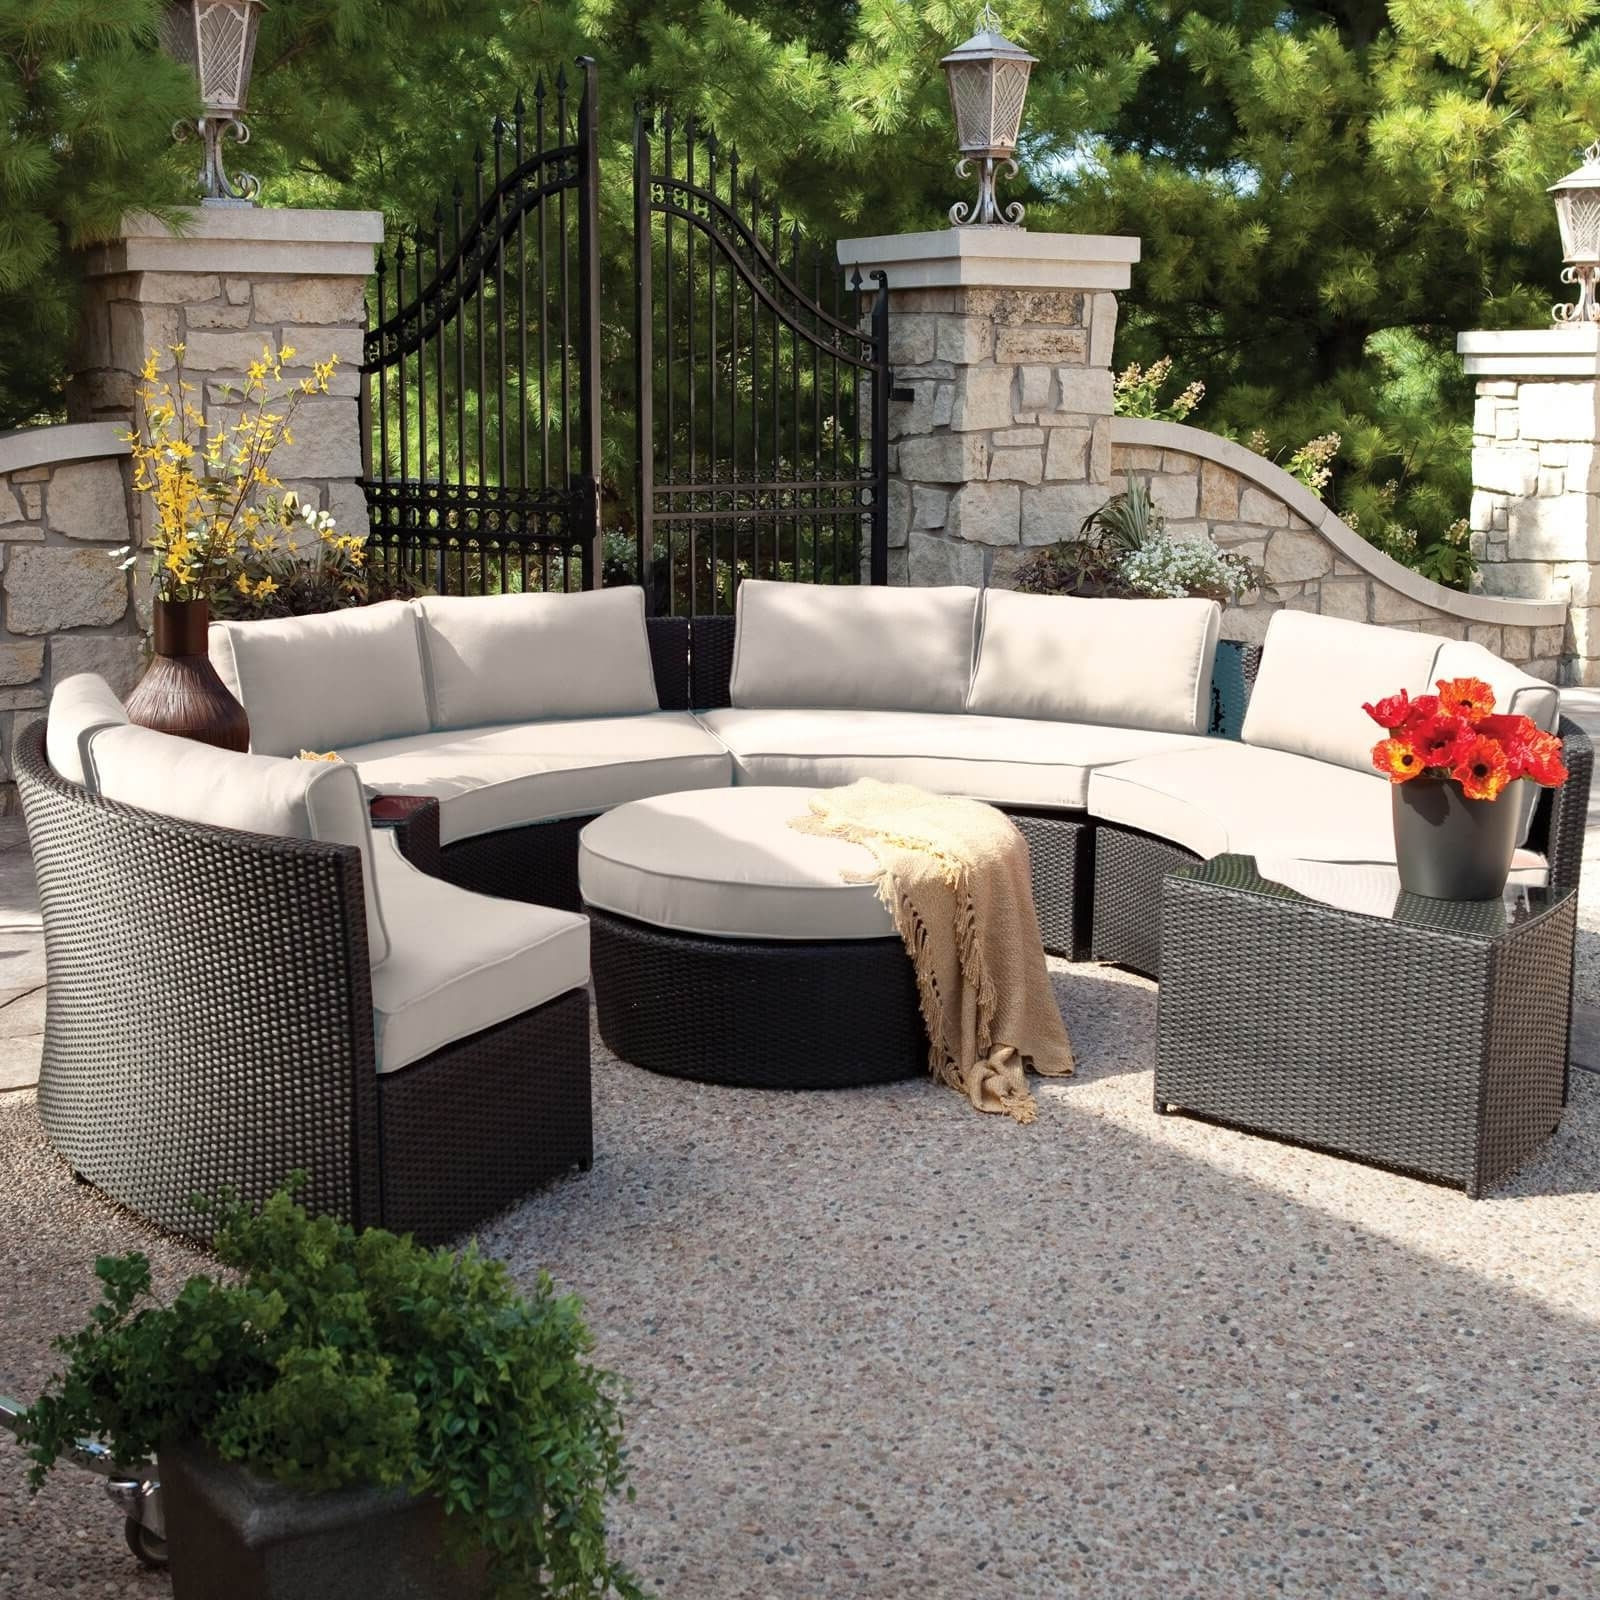 Famous 25 Awesome Modern Brown All Weather Outdoor Patio Sectionals With Patio Conversation Sets With Ottomans (View 9 of 20)